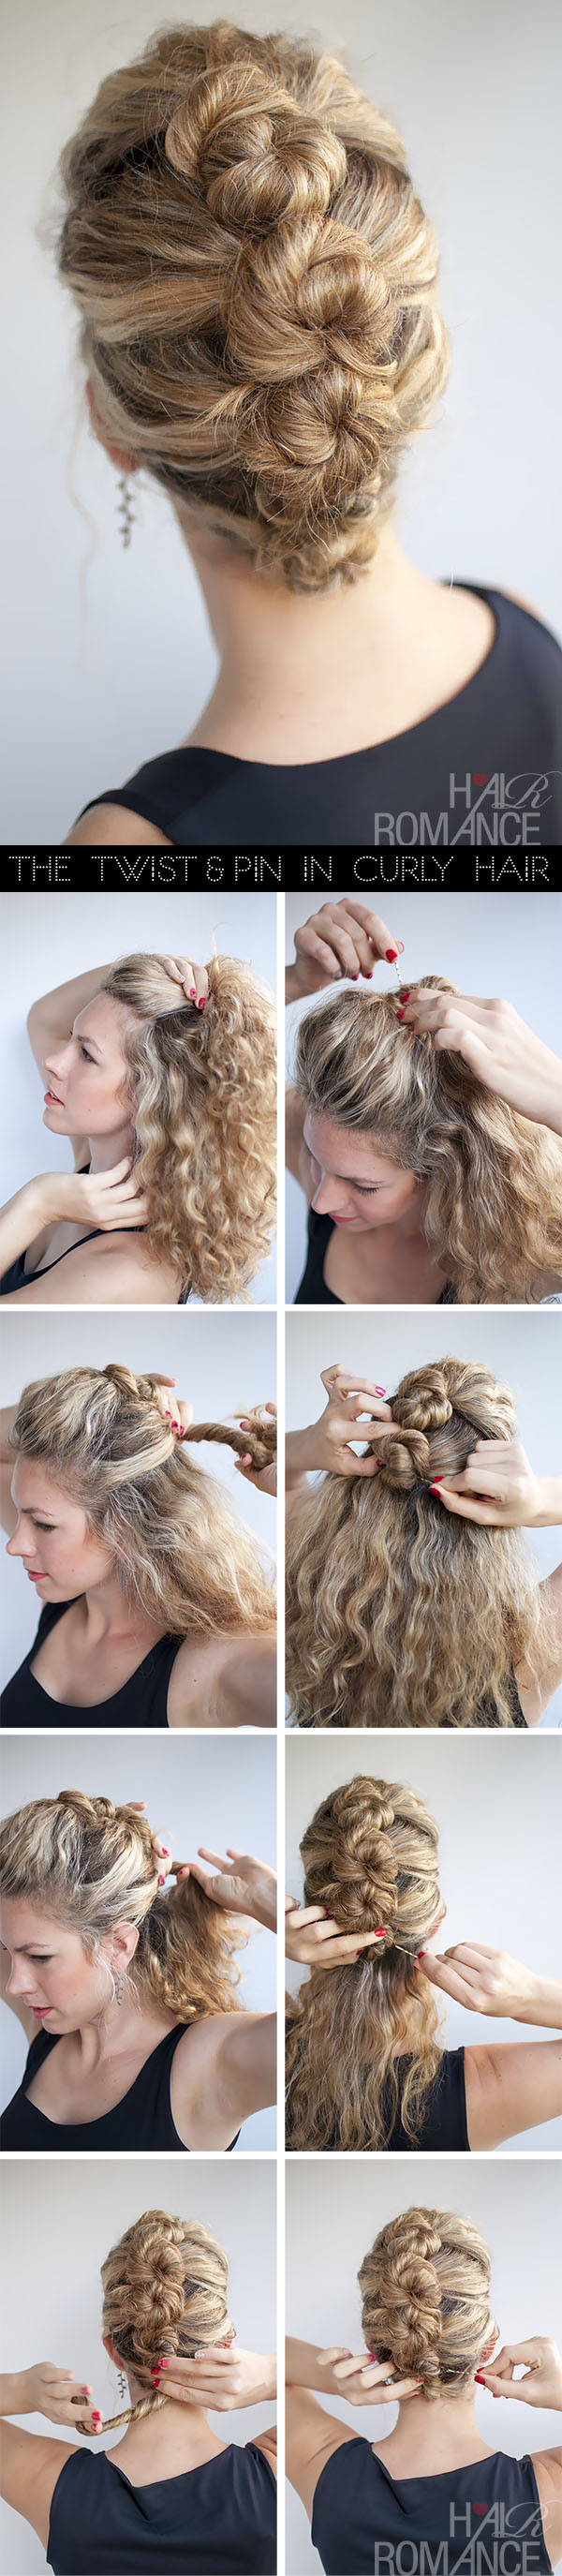 Romance hairstyle tutorial - The French Twist and Pin in curly hair